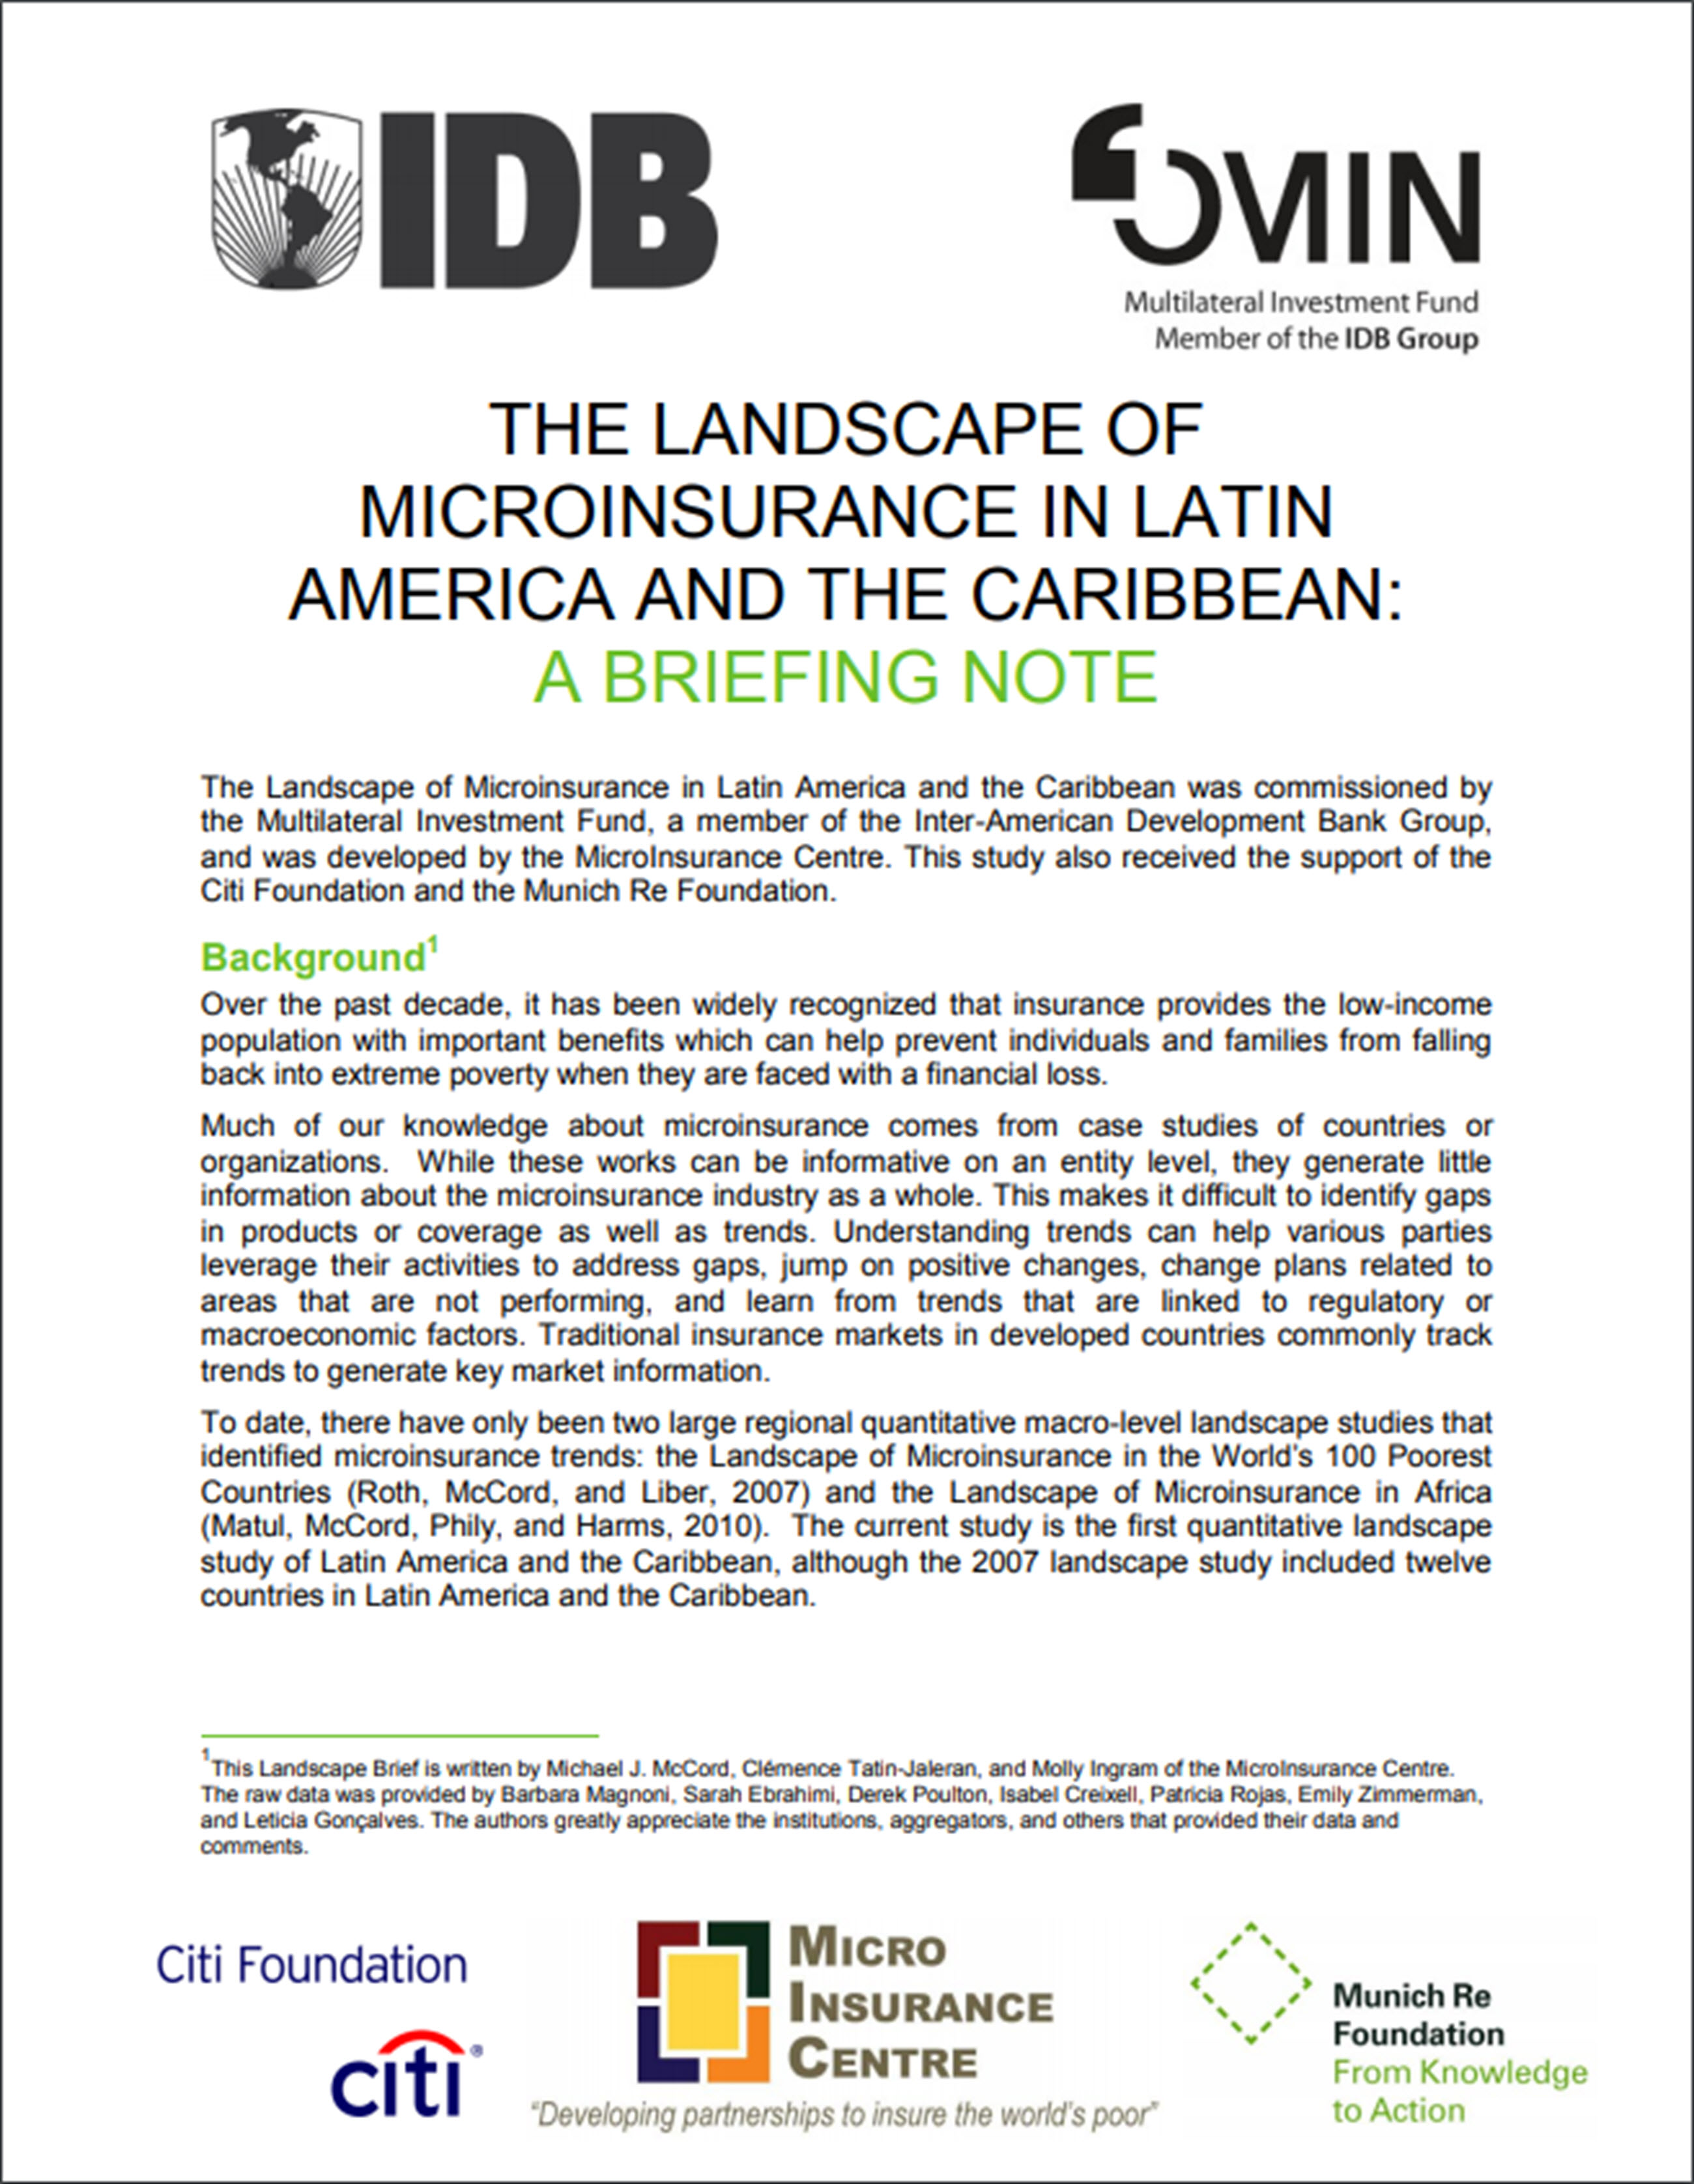 The Landscape of Microinsurance in Latin America and the Caribbean